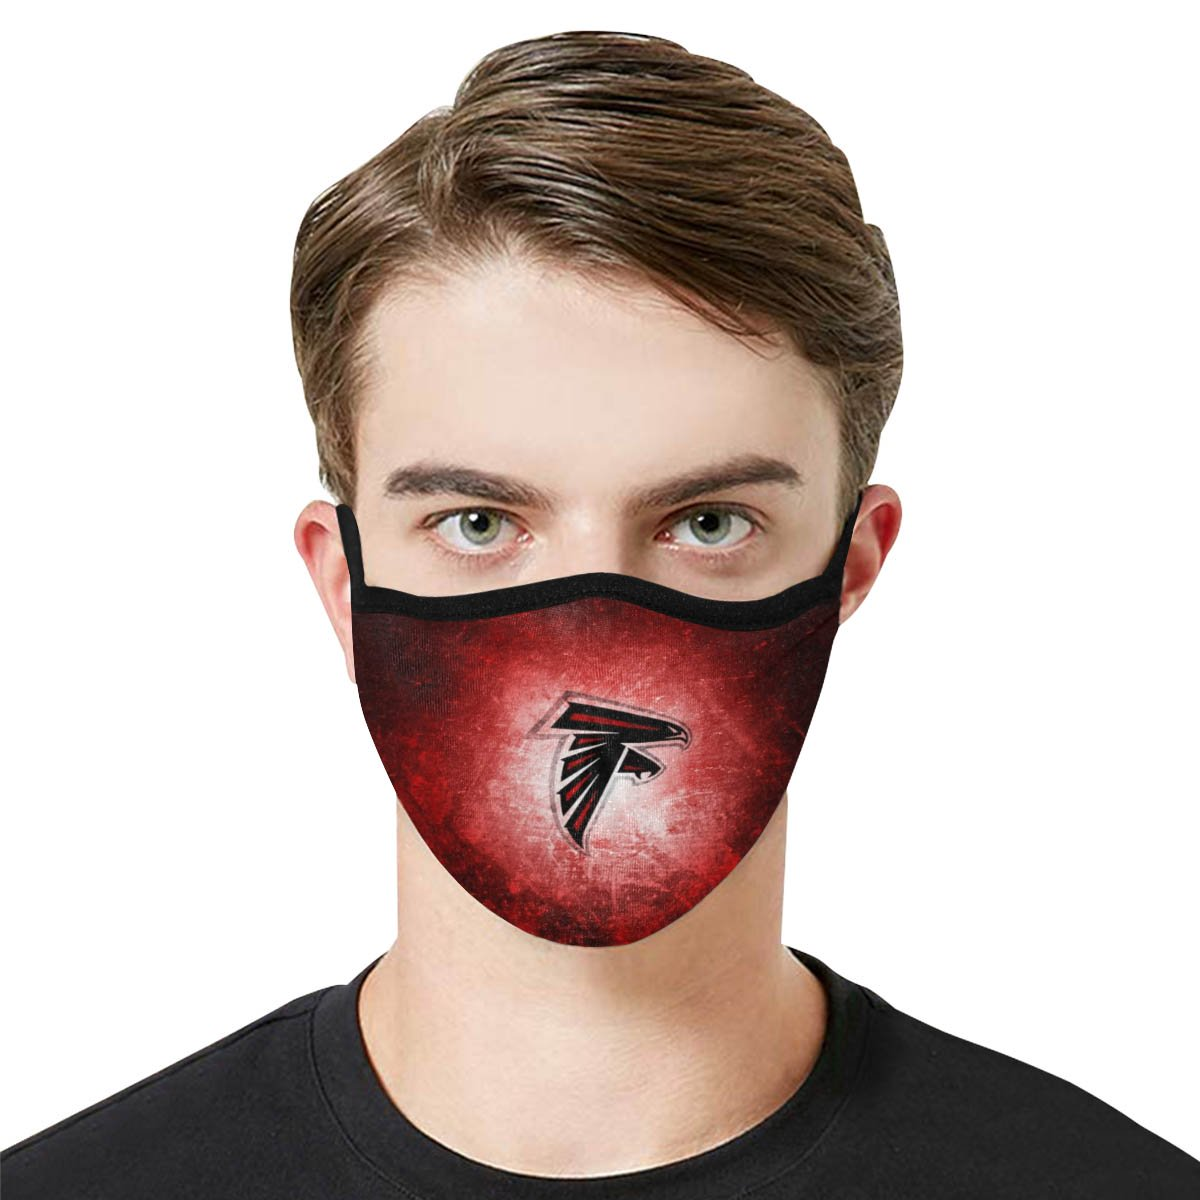 Face Mask Filter PM2.5 Atlanta Falcons Face Mask Filter PM2.5